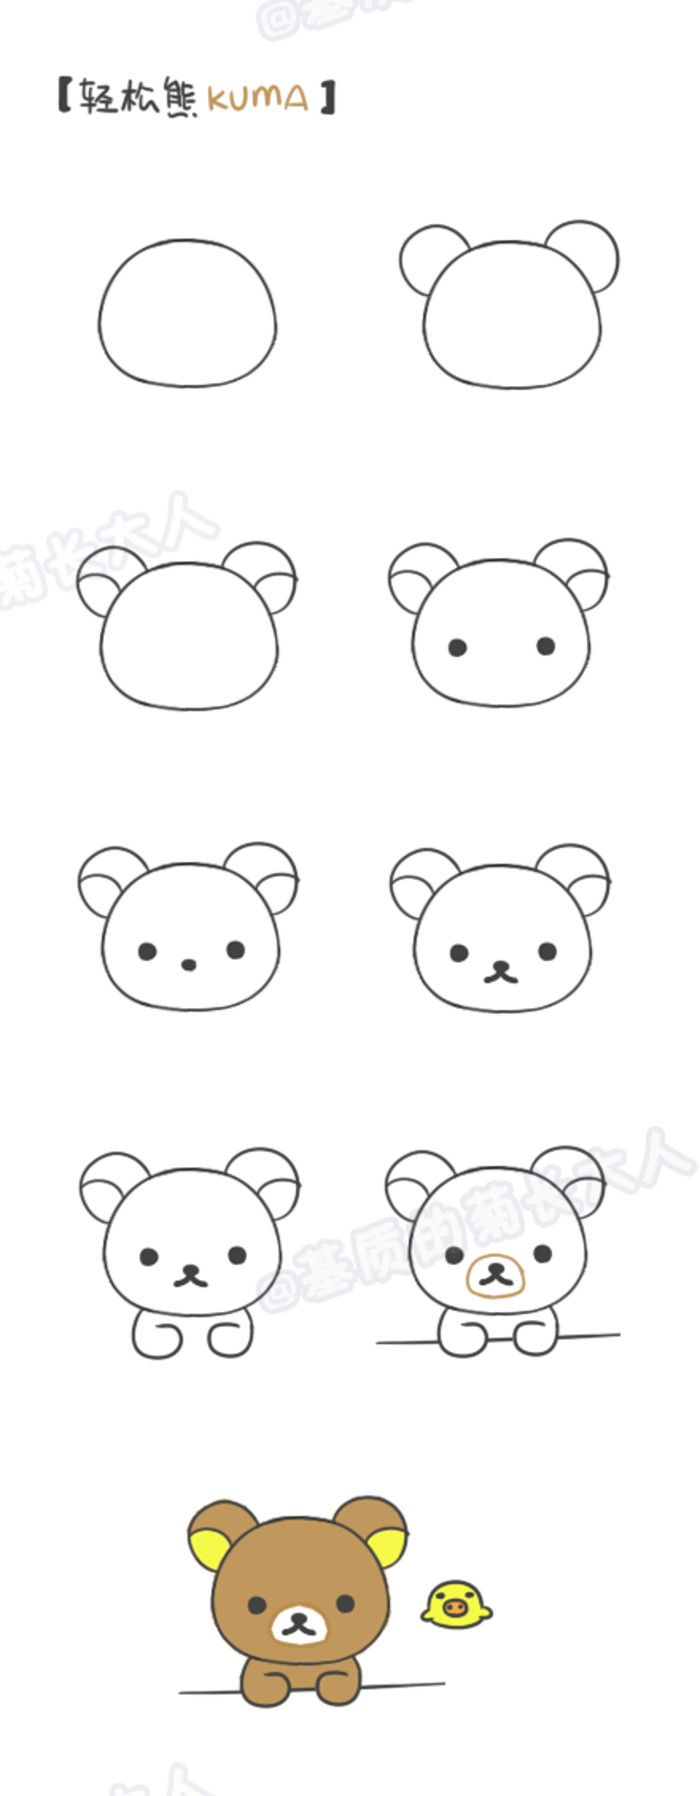 Pda tutorials easily bear kuma doodles pinterest for Things for drawing